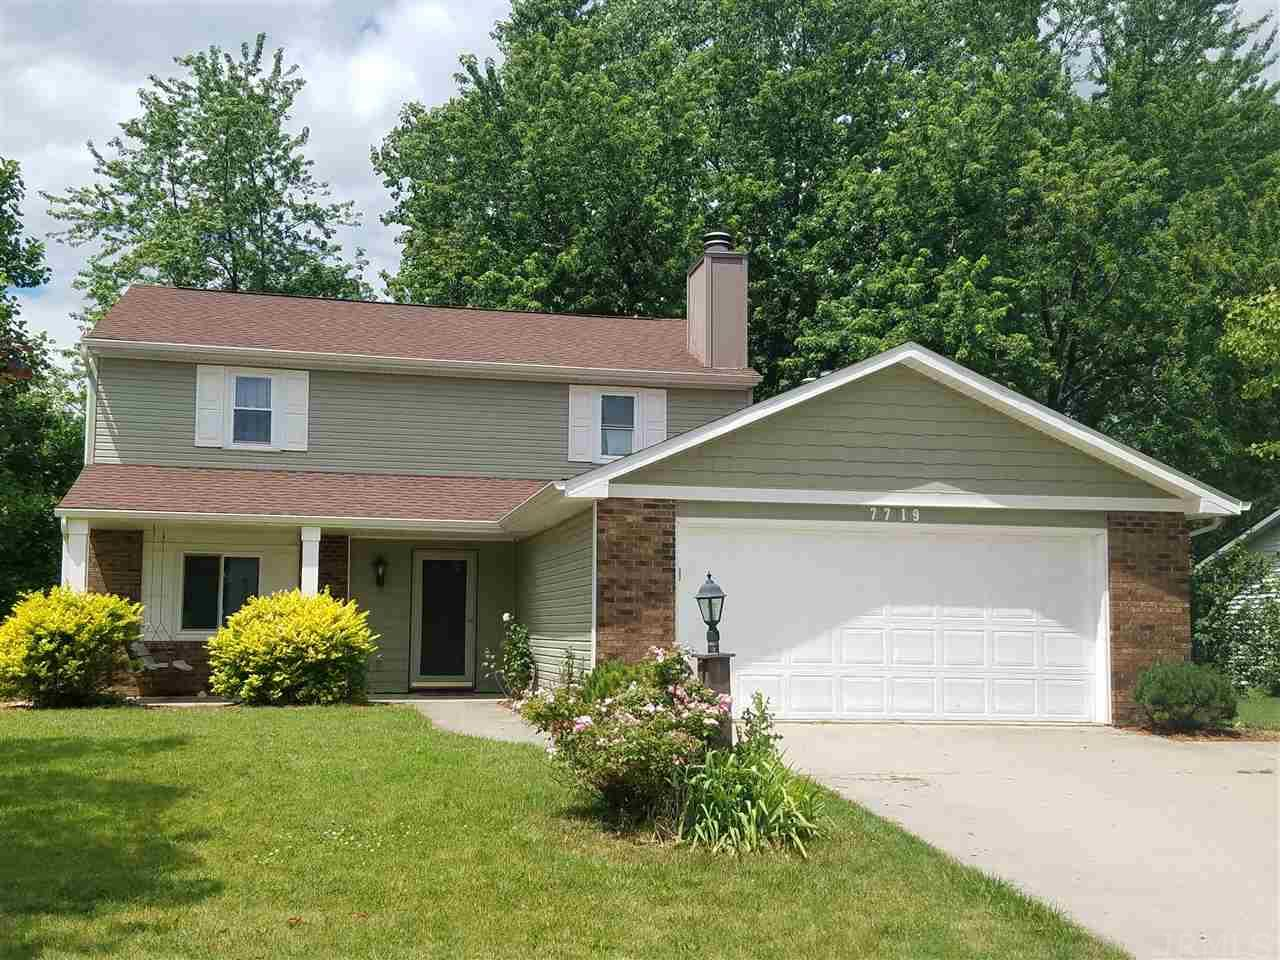 7719 BROOKFIELD, Fort Wayne, IN 46835